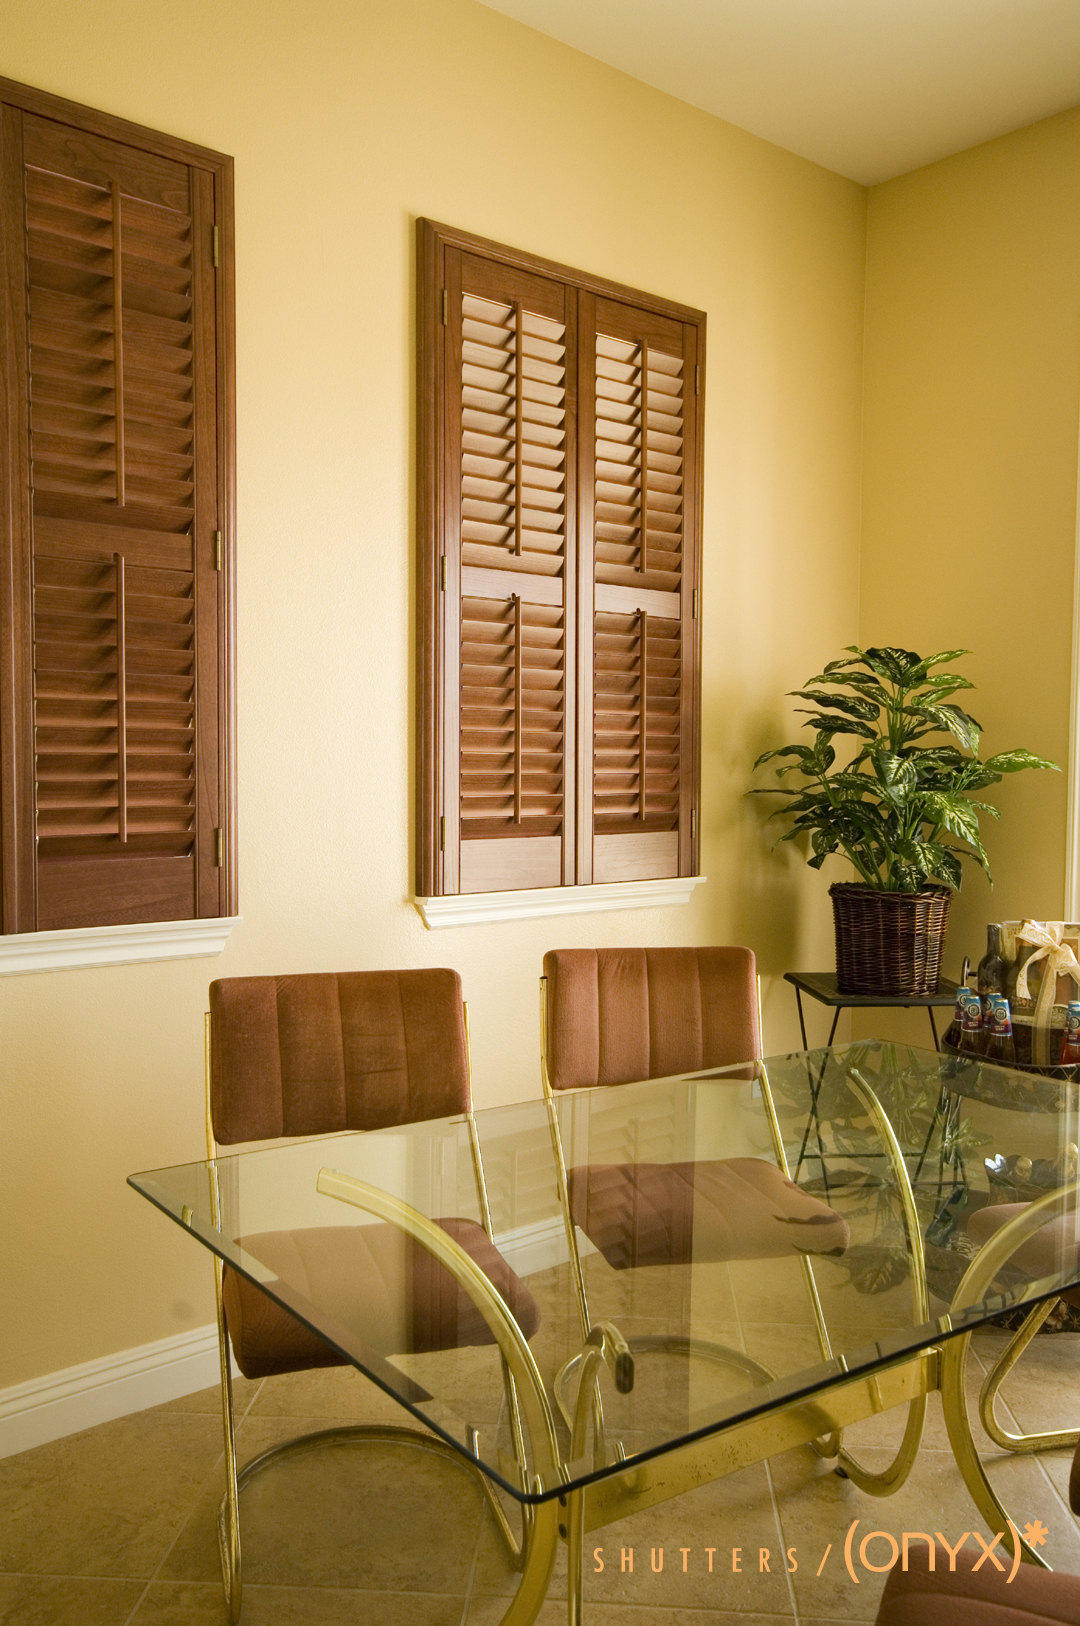 Blog - Page 7 of 10 - Villa Blind and Shutter